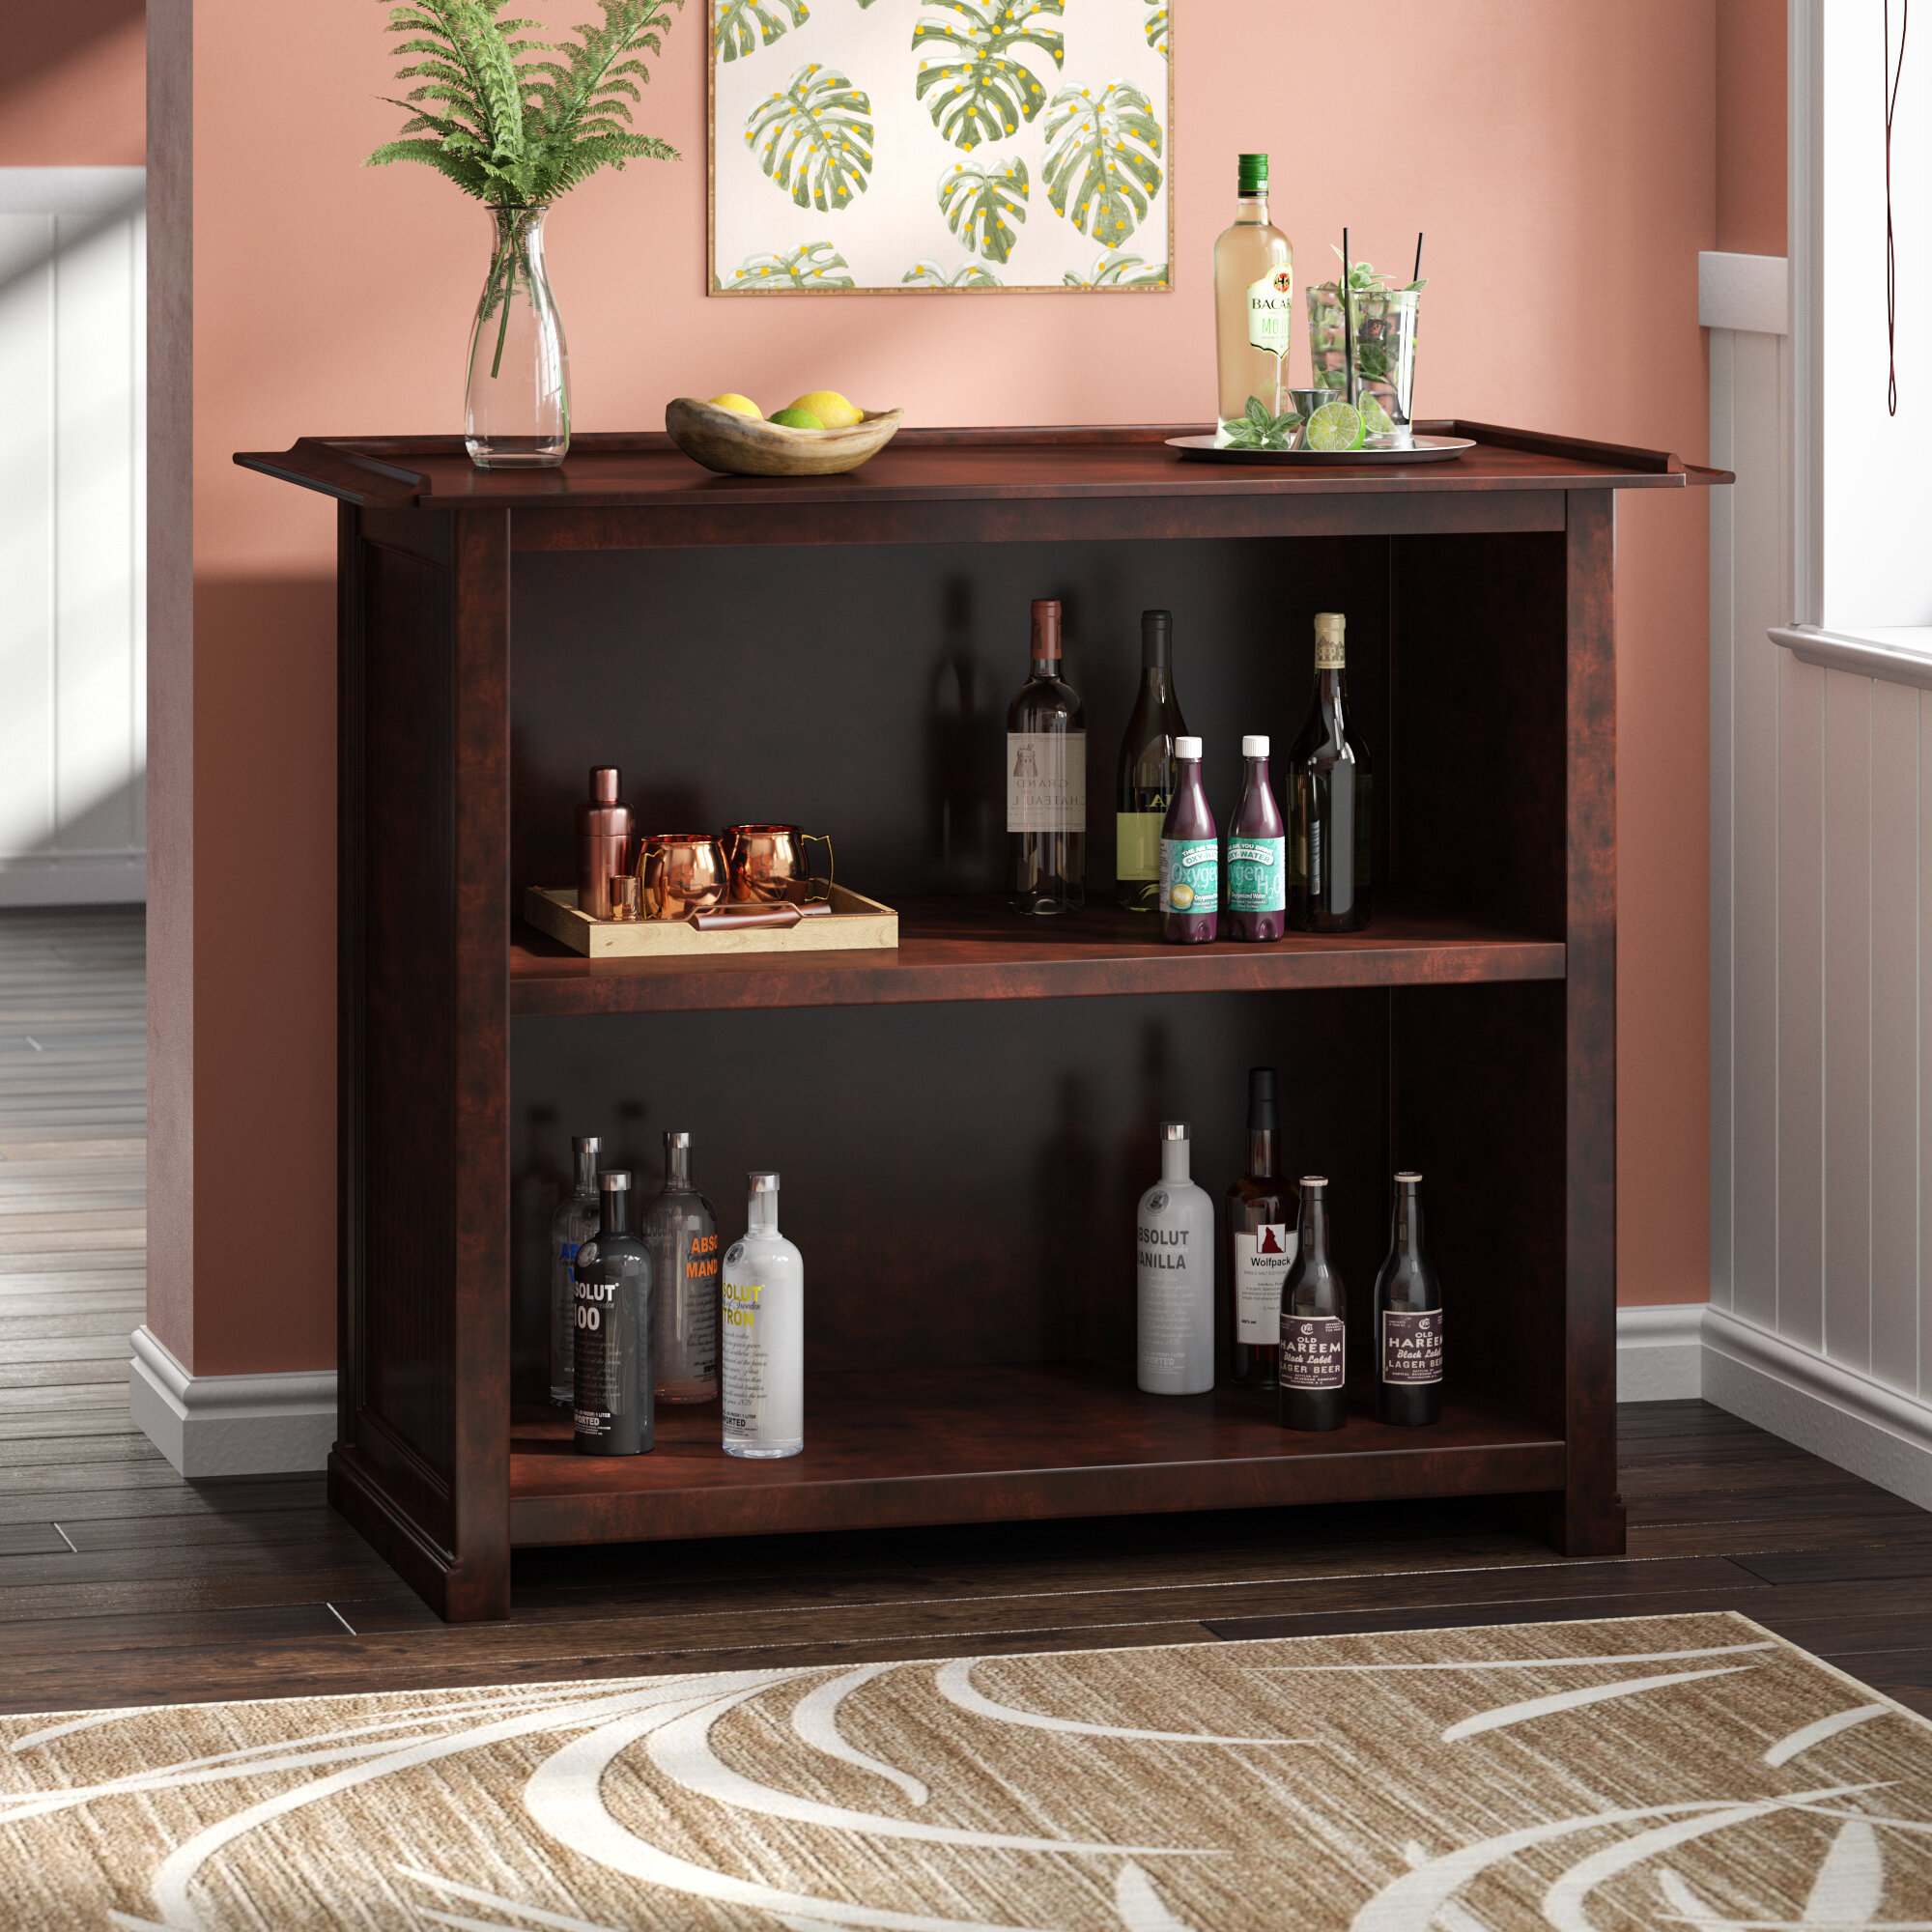 Red Bar Wine Cabinets You Ll Love In 2021 Wayfair